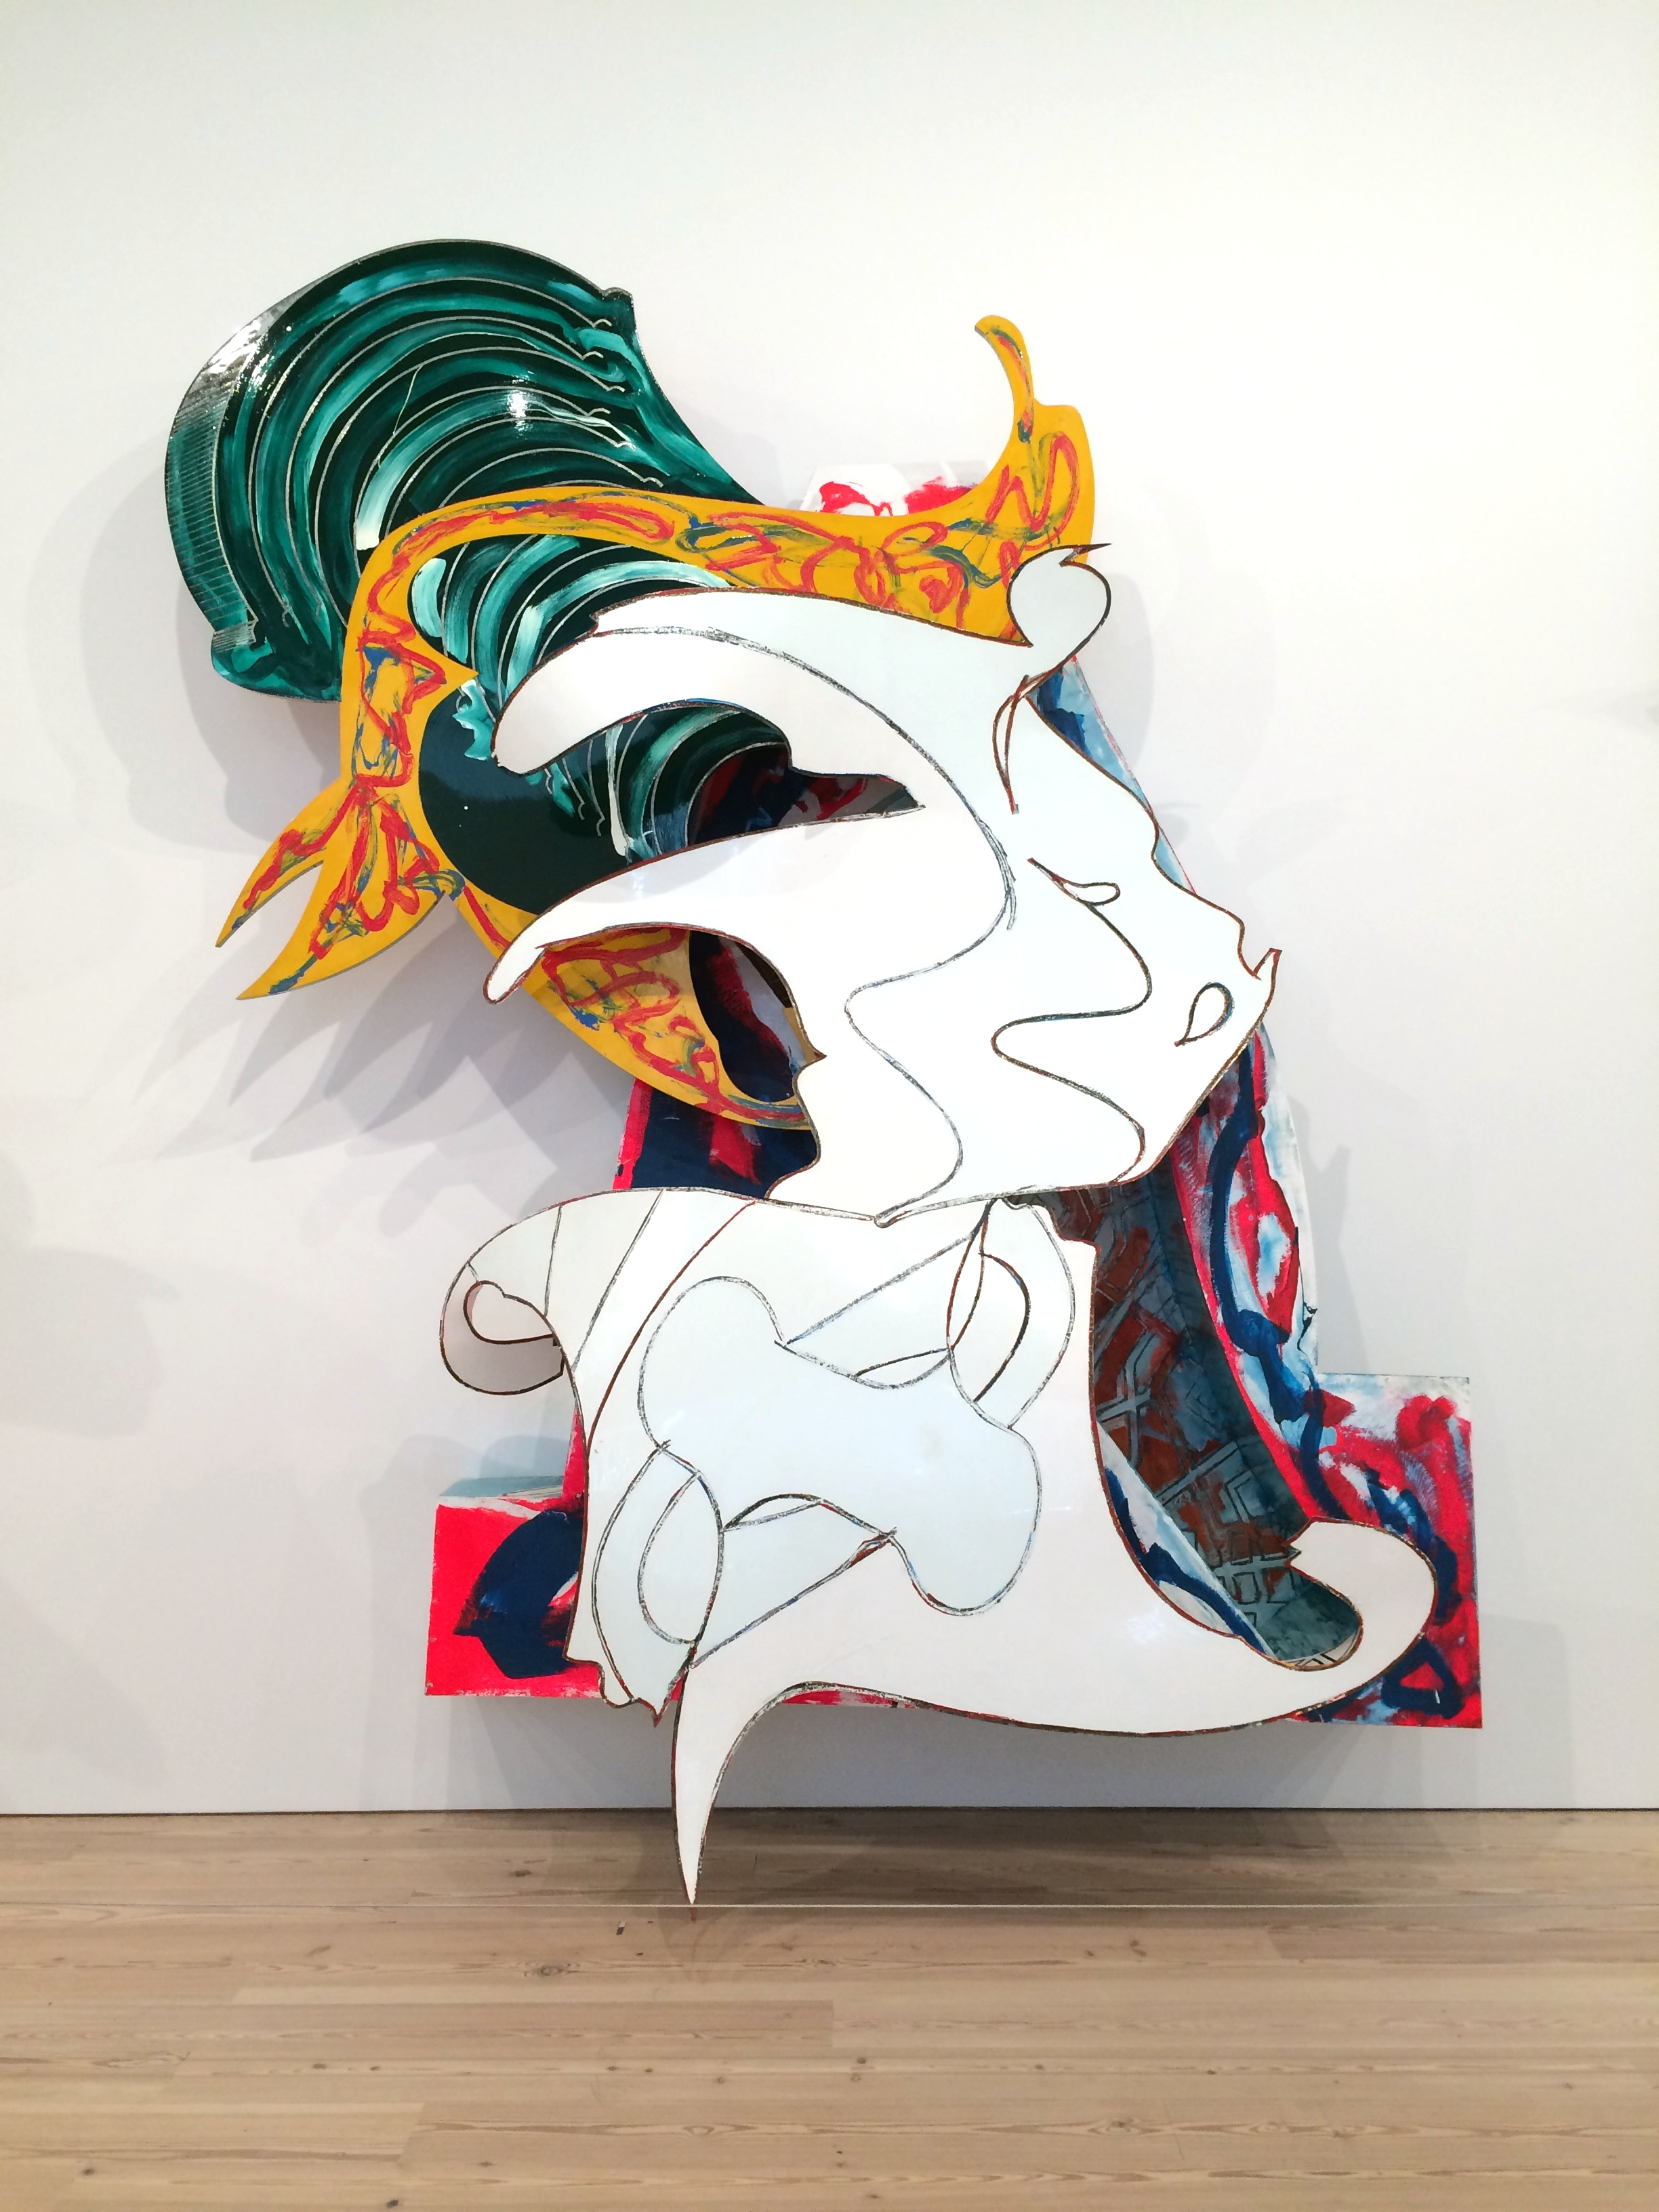 Frank Stella, The Whiteness of the Whale, 1987, paint on aluminum, 149 × 121 3/4